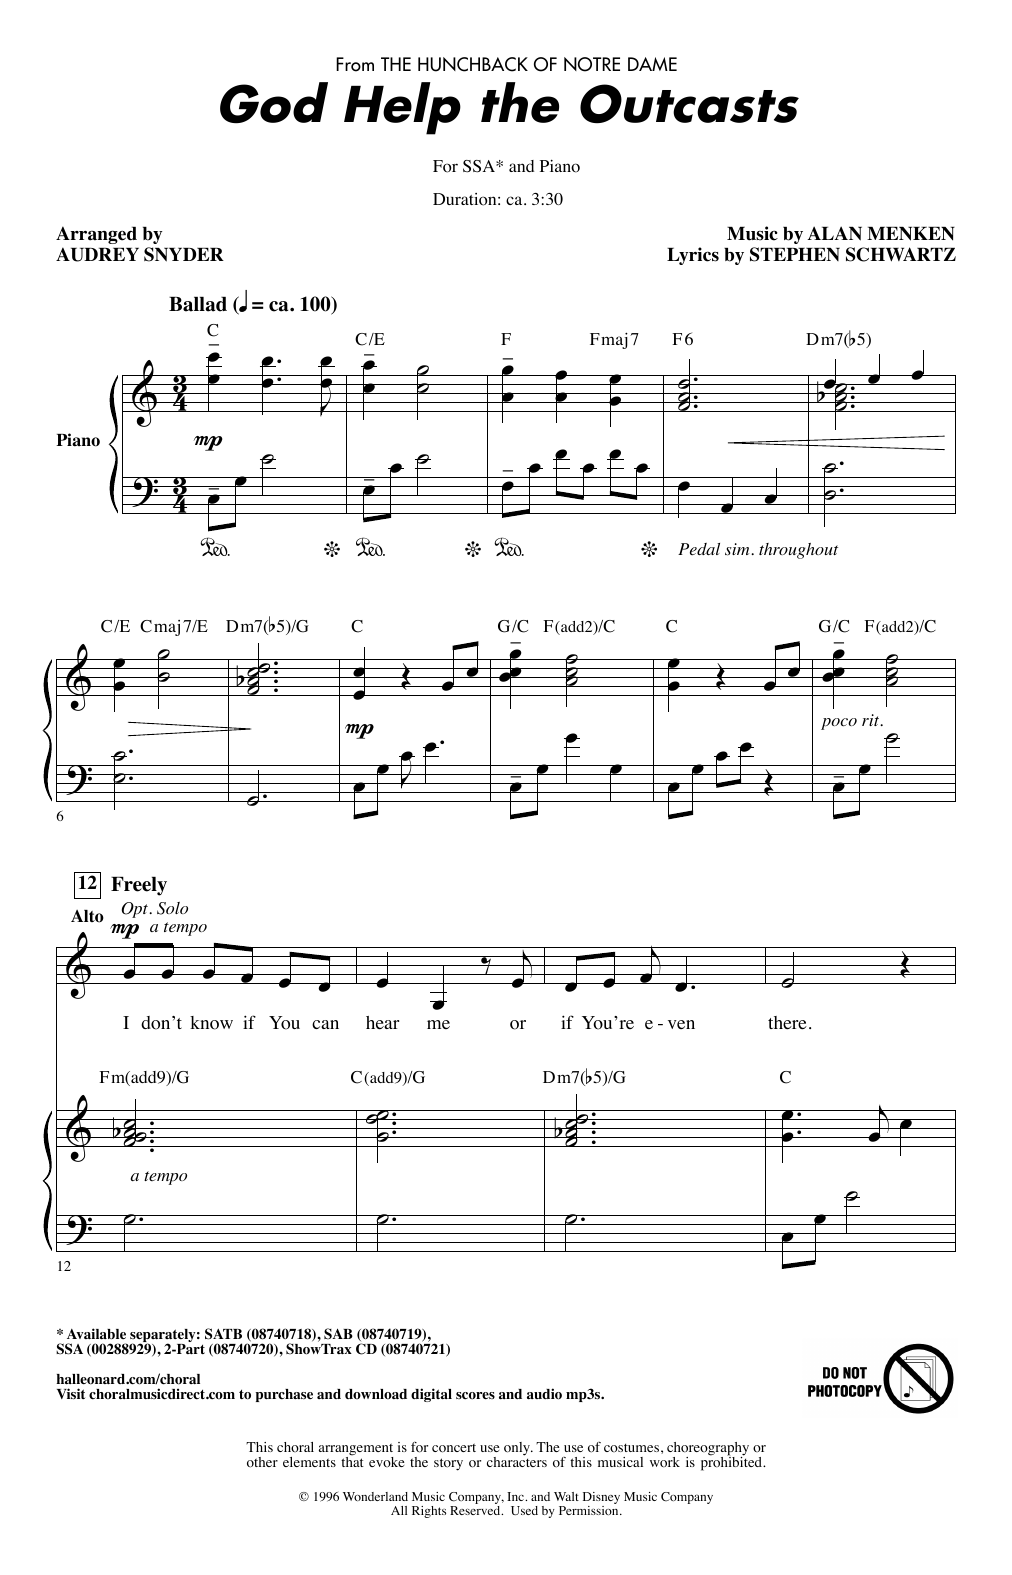 God Help The Outcasts (from The Hunchback Of Notre Dame) (arr. Audrey Snyder) (SSA Choir)